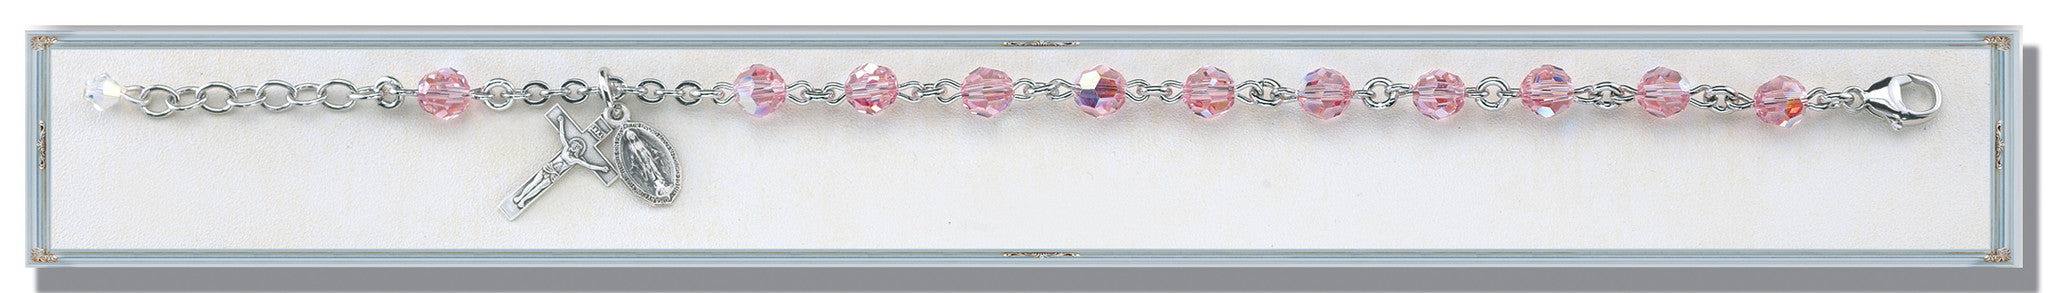 rose_round_crystal_sterling_bracelet